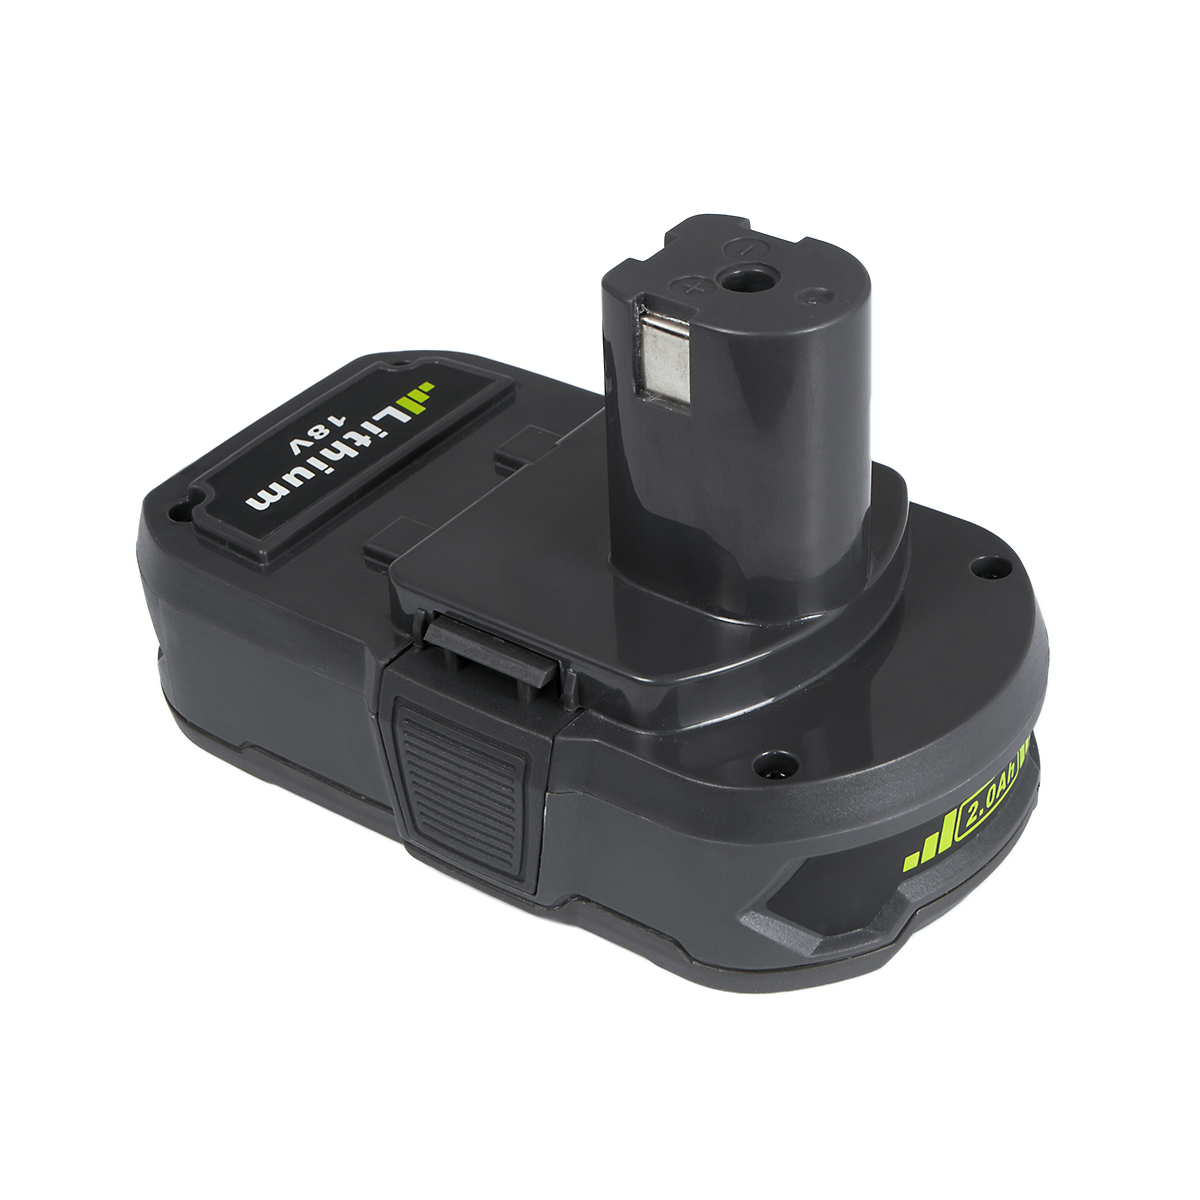 Ryobi Replace One One Plus 18v 2 0ah Lithium Ion Battery